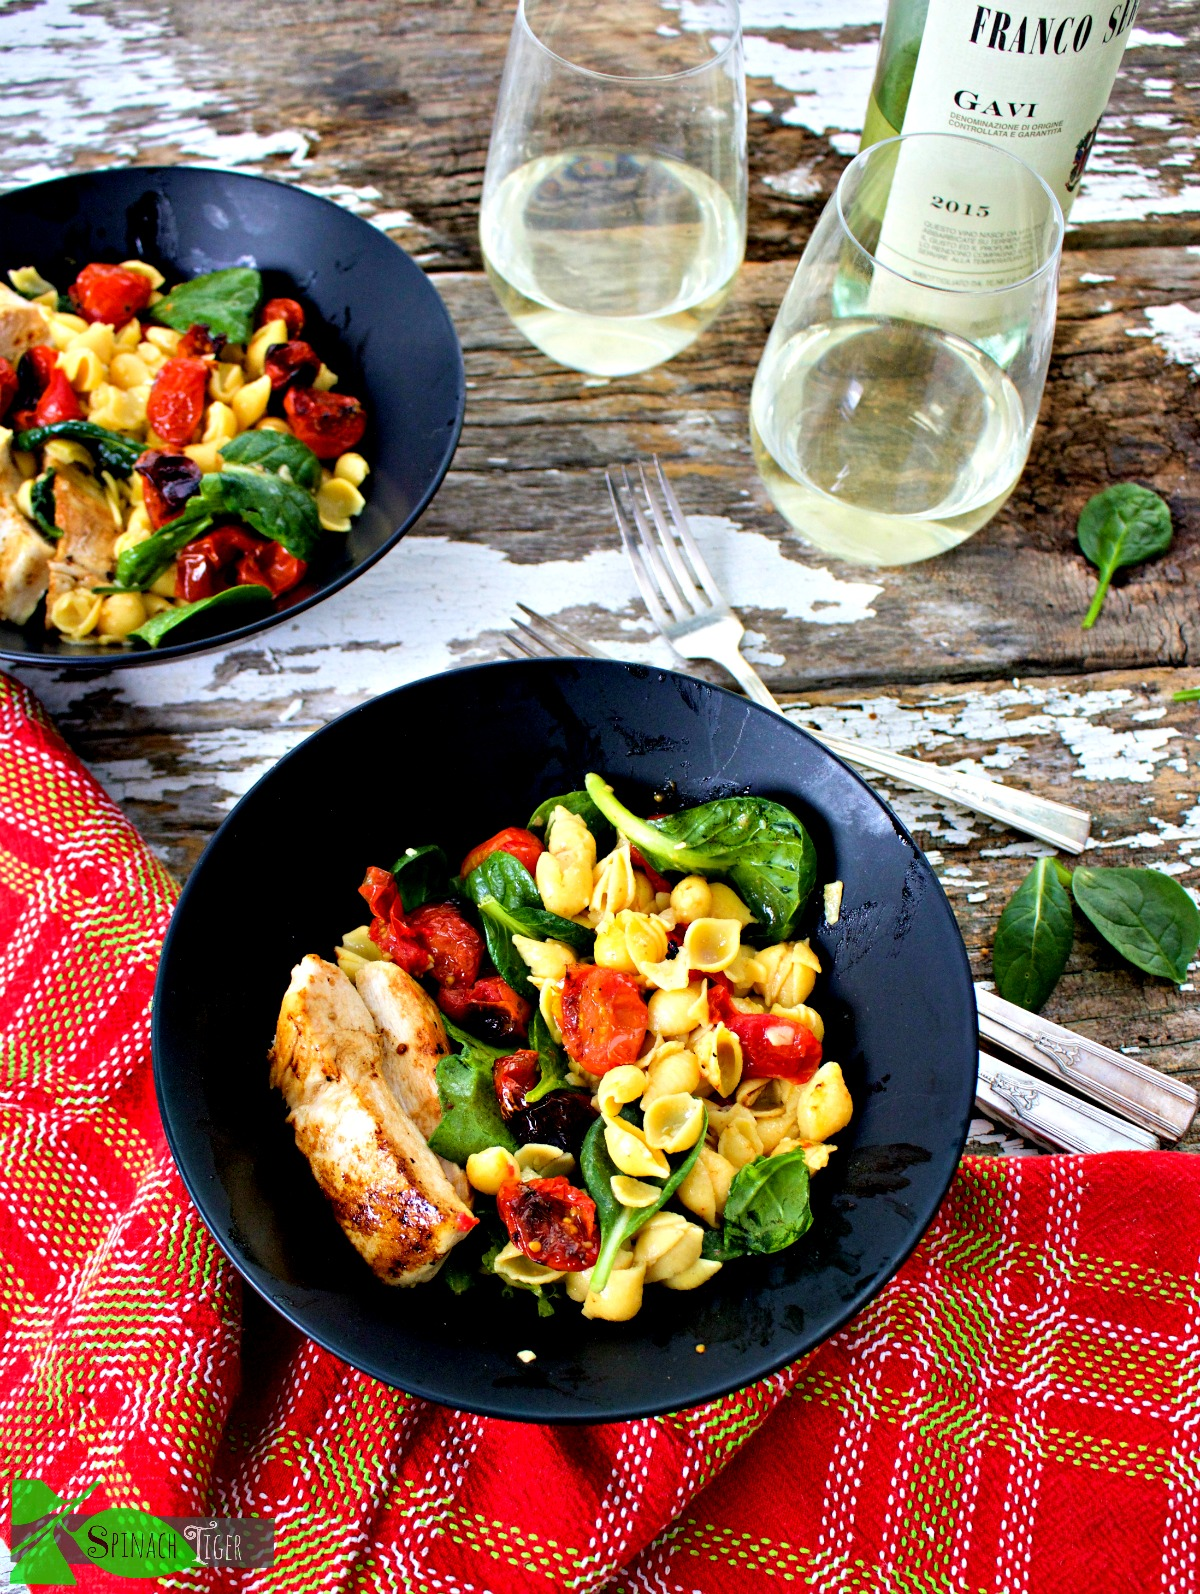 Healthy Chicken Pasta Shells with Roasted Tomatoes from Spinach Tiger